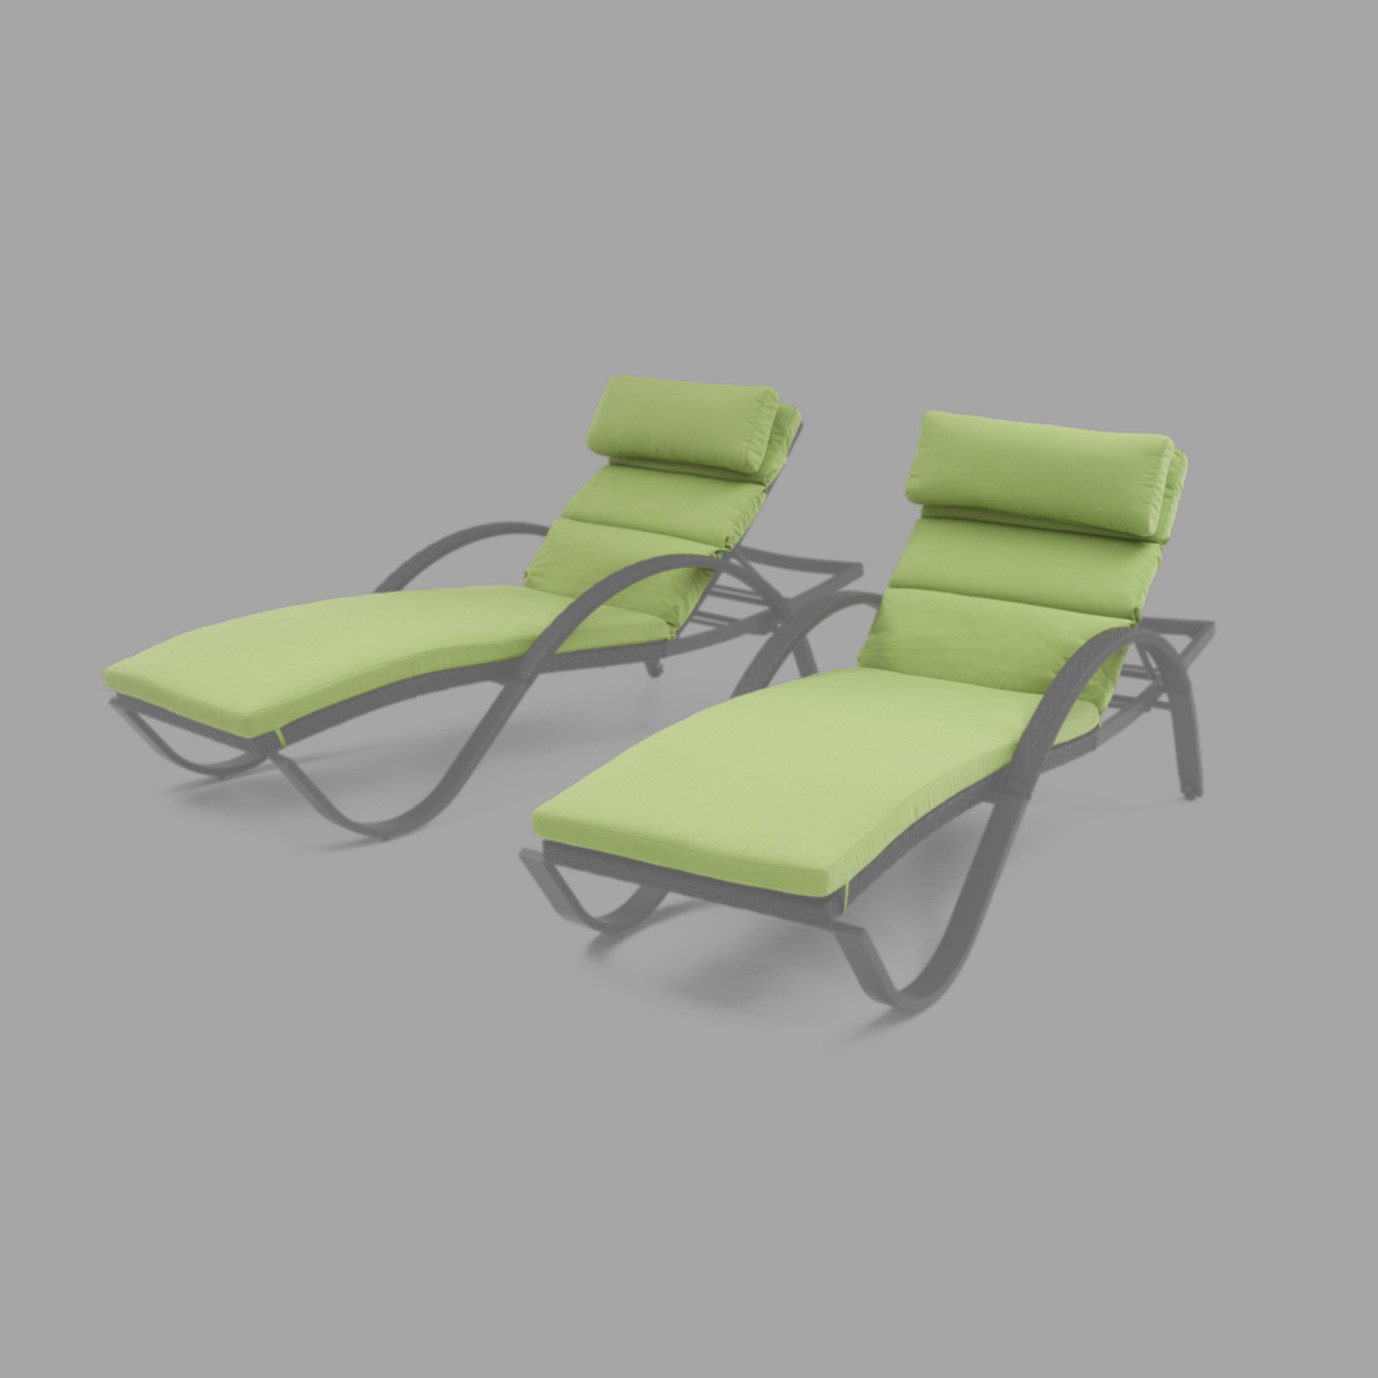 Outdoor Chaise Lounges Cushions Rst Brands